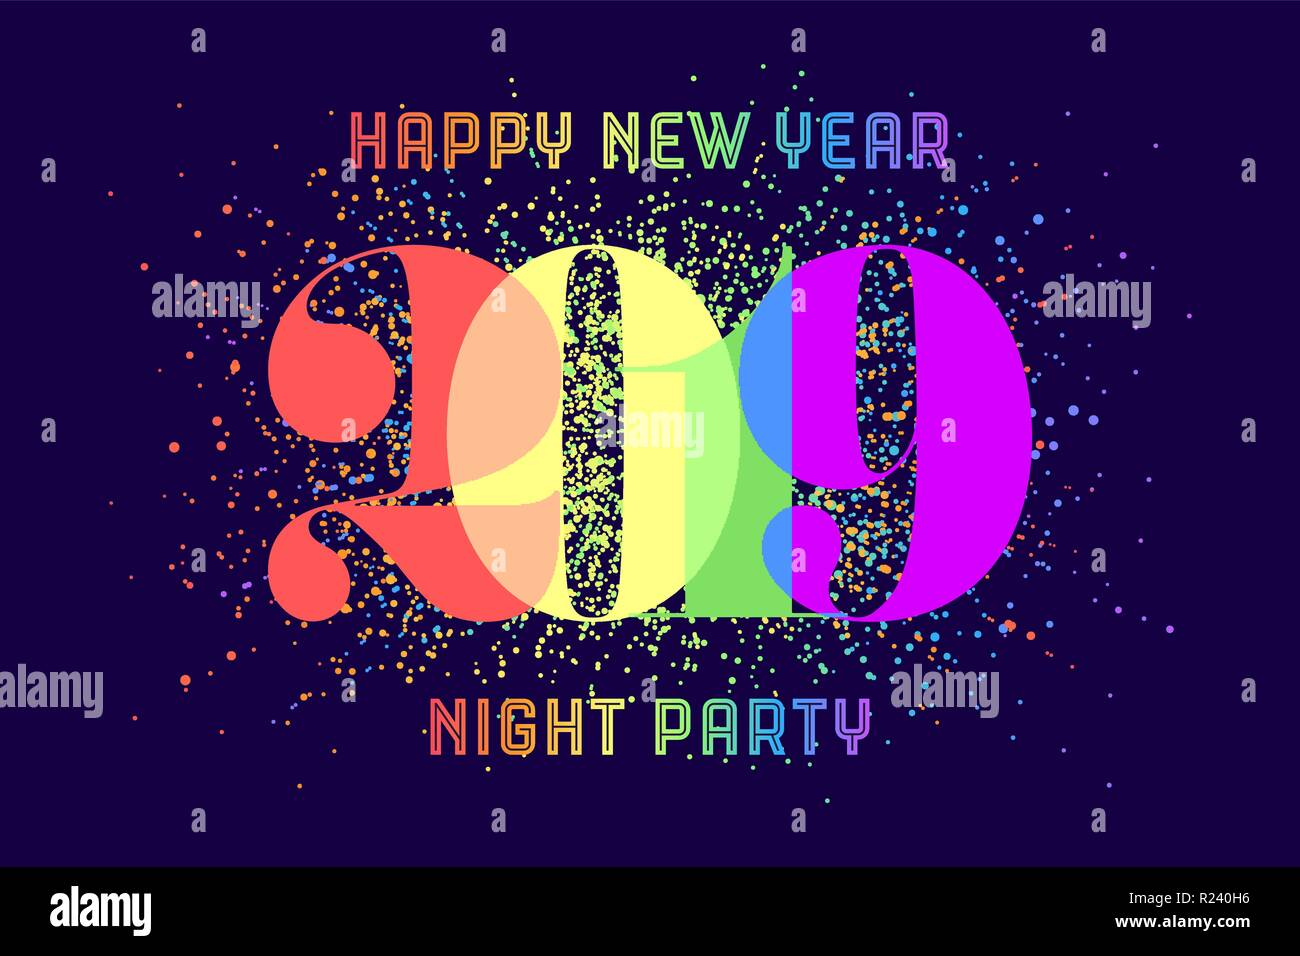 happy new year greeting card with colorful rainbow